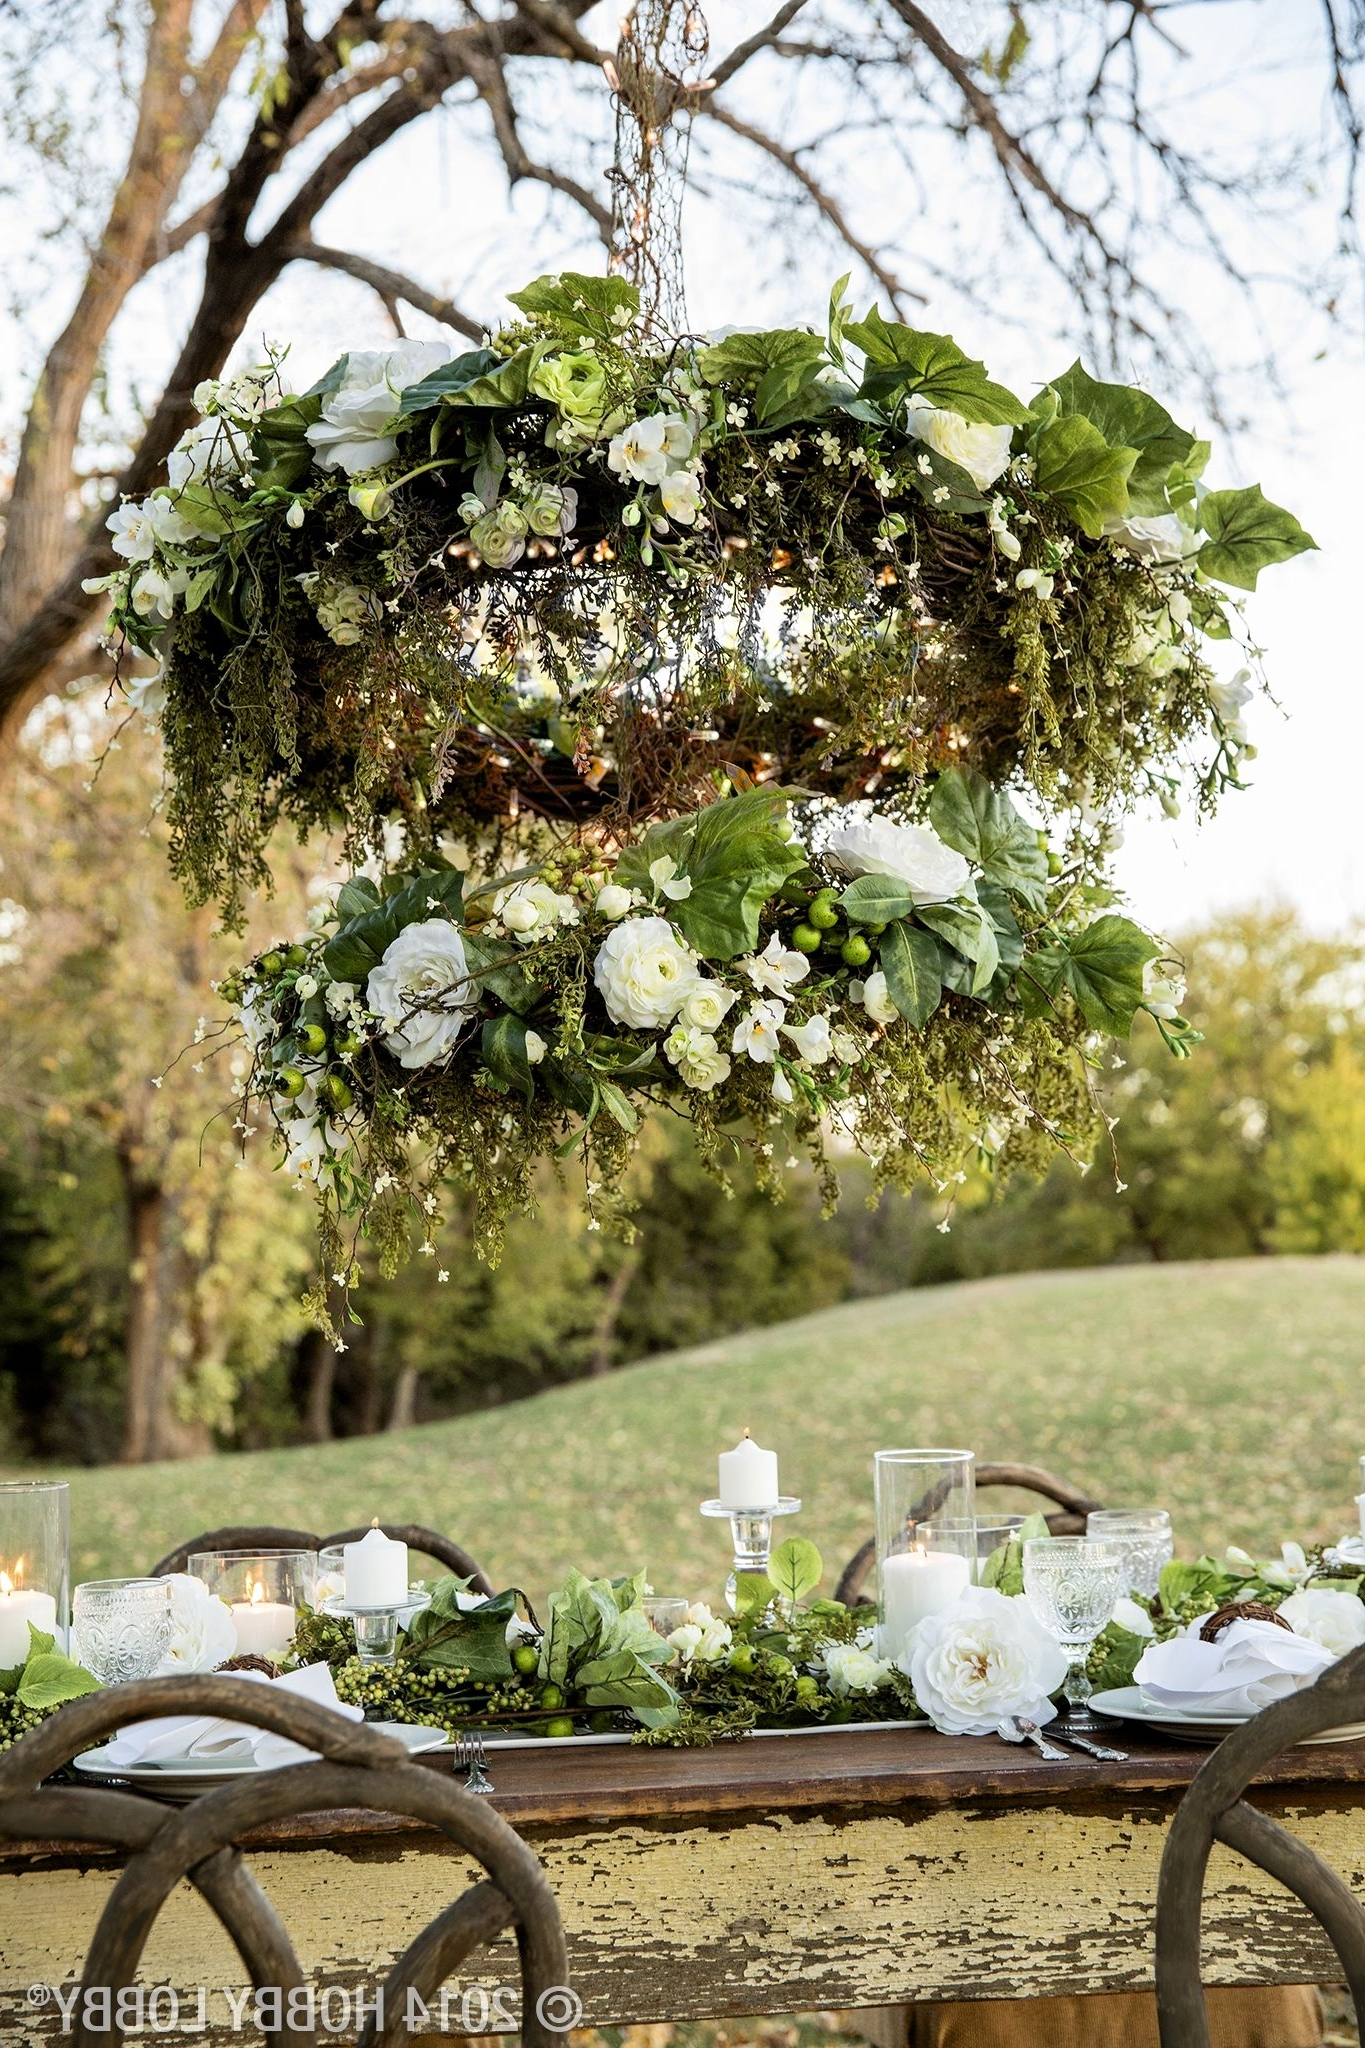 This Two Tiered Diy Chandelier Is Made From Grapevine Wreaths, White Throughout Famous Outdoor Hanging Grape Lights (View 16 of 20)